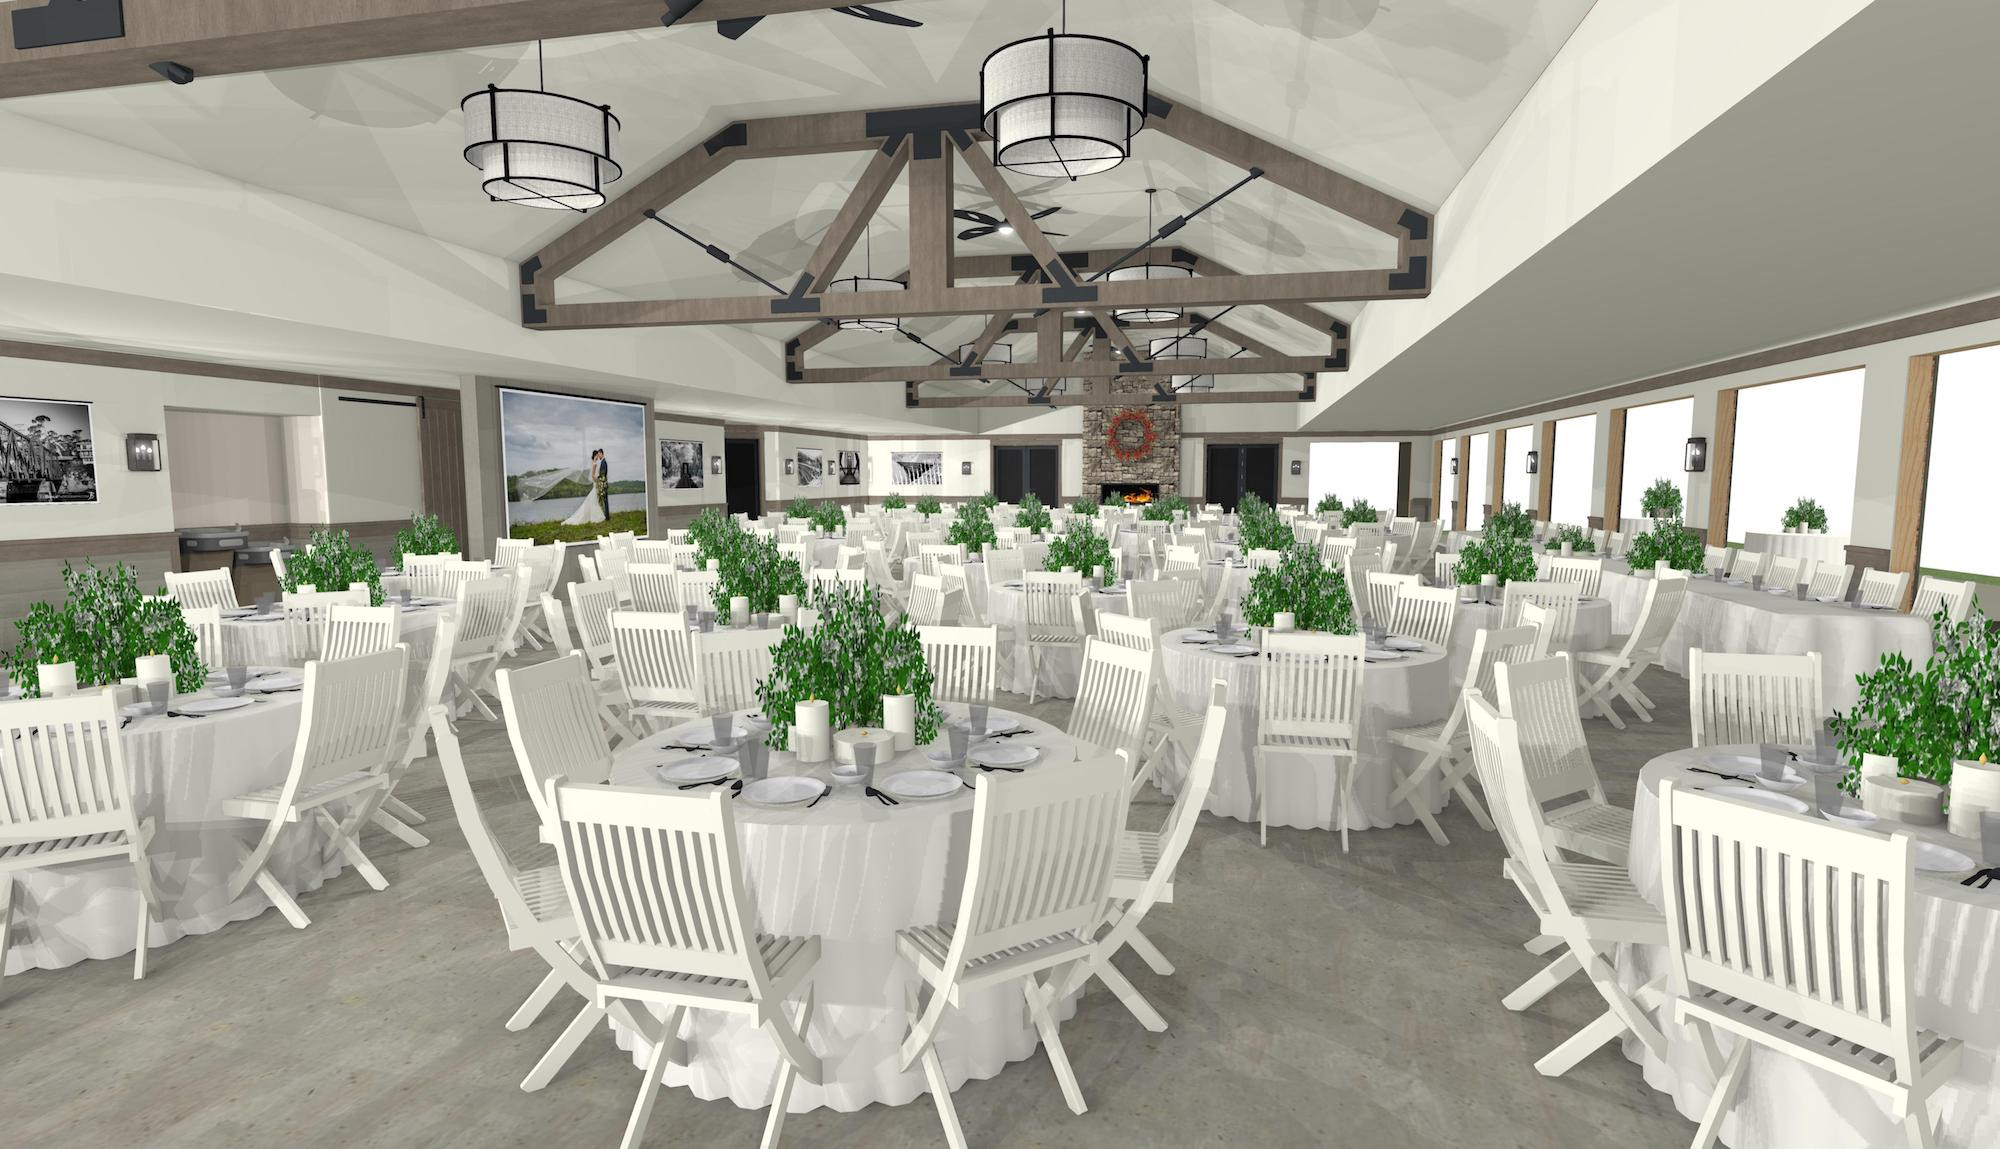 The Union Pavilion at Railside Golf Club partial interior rendering